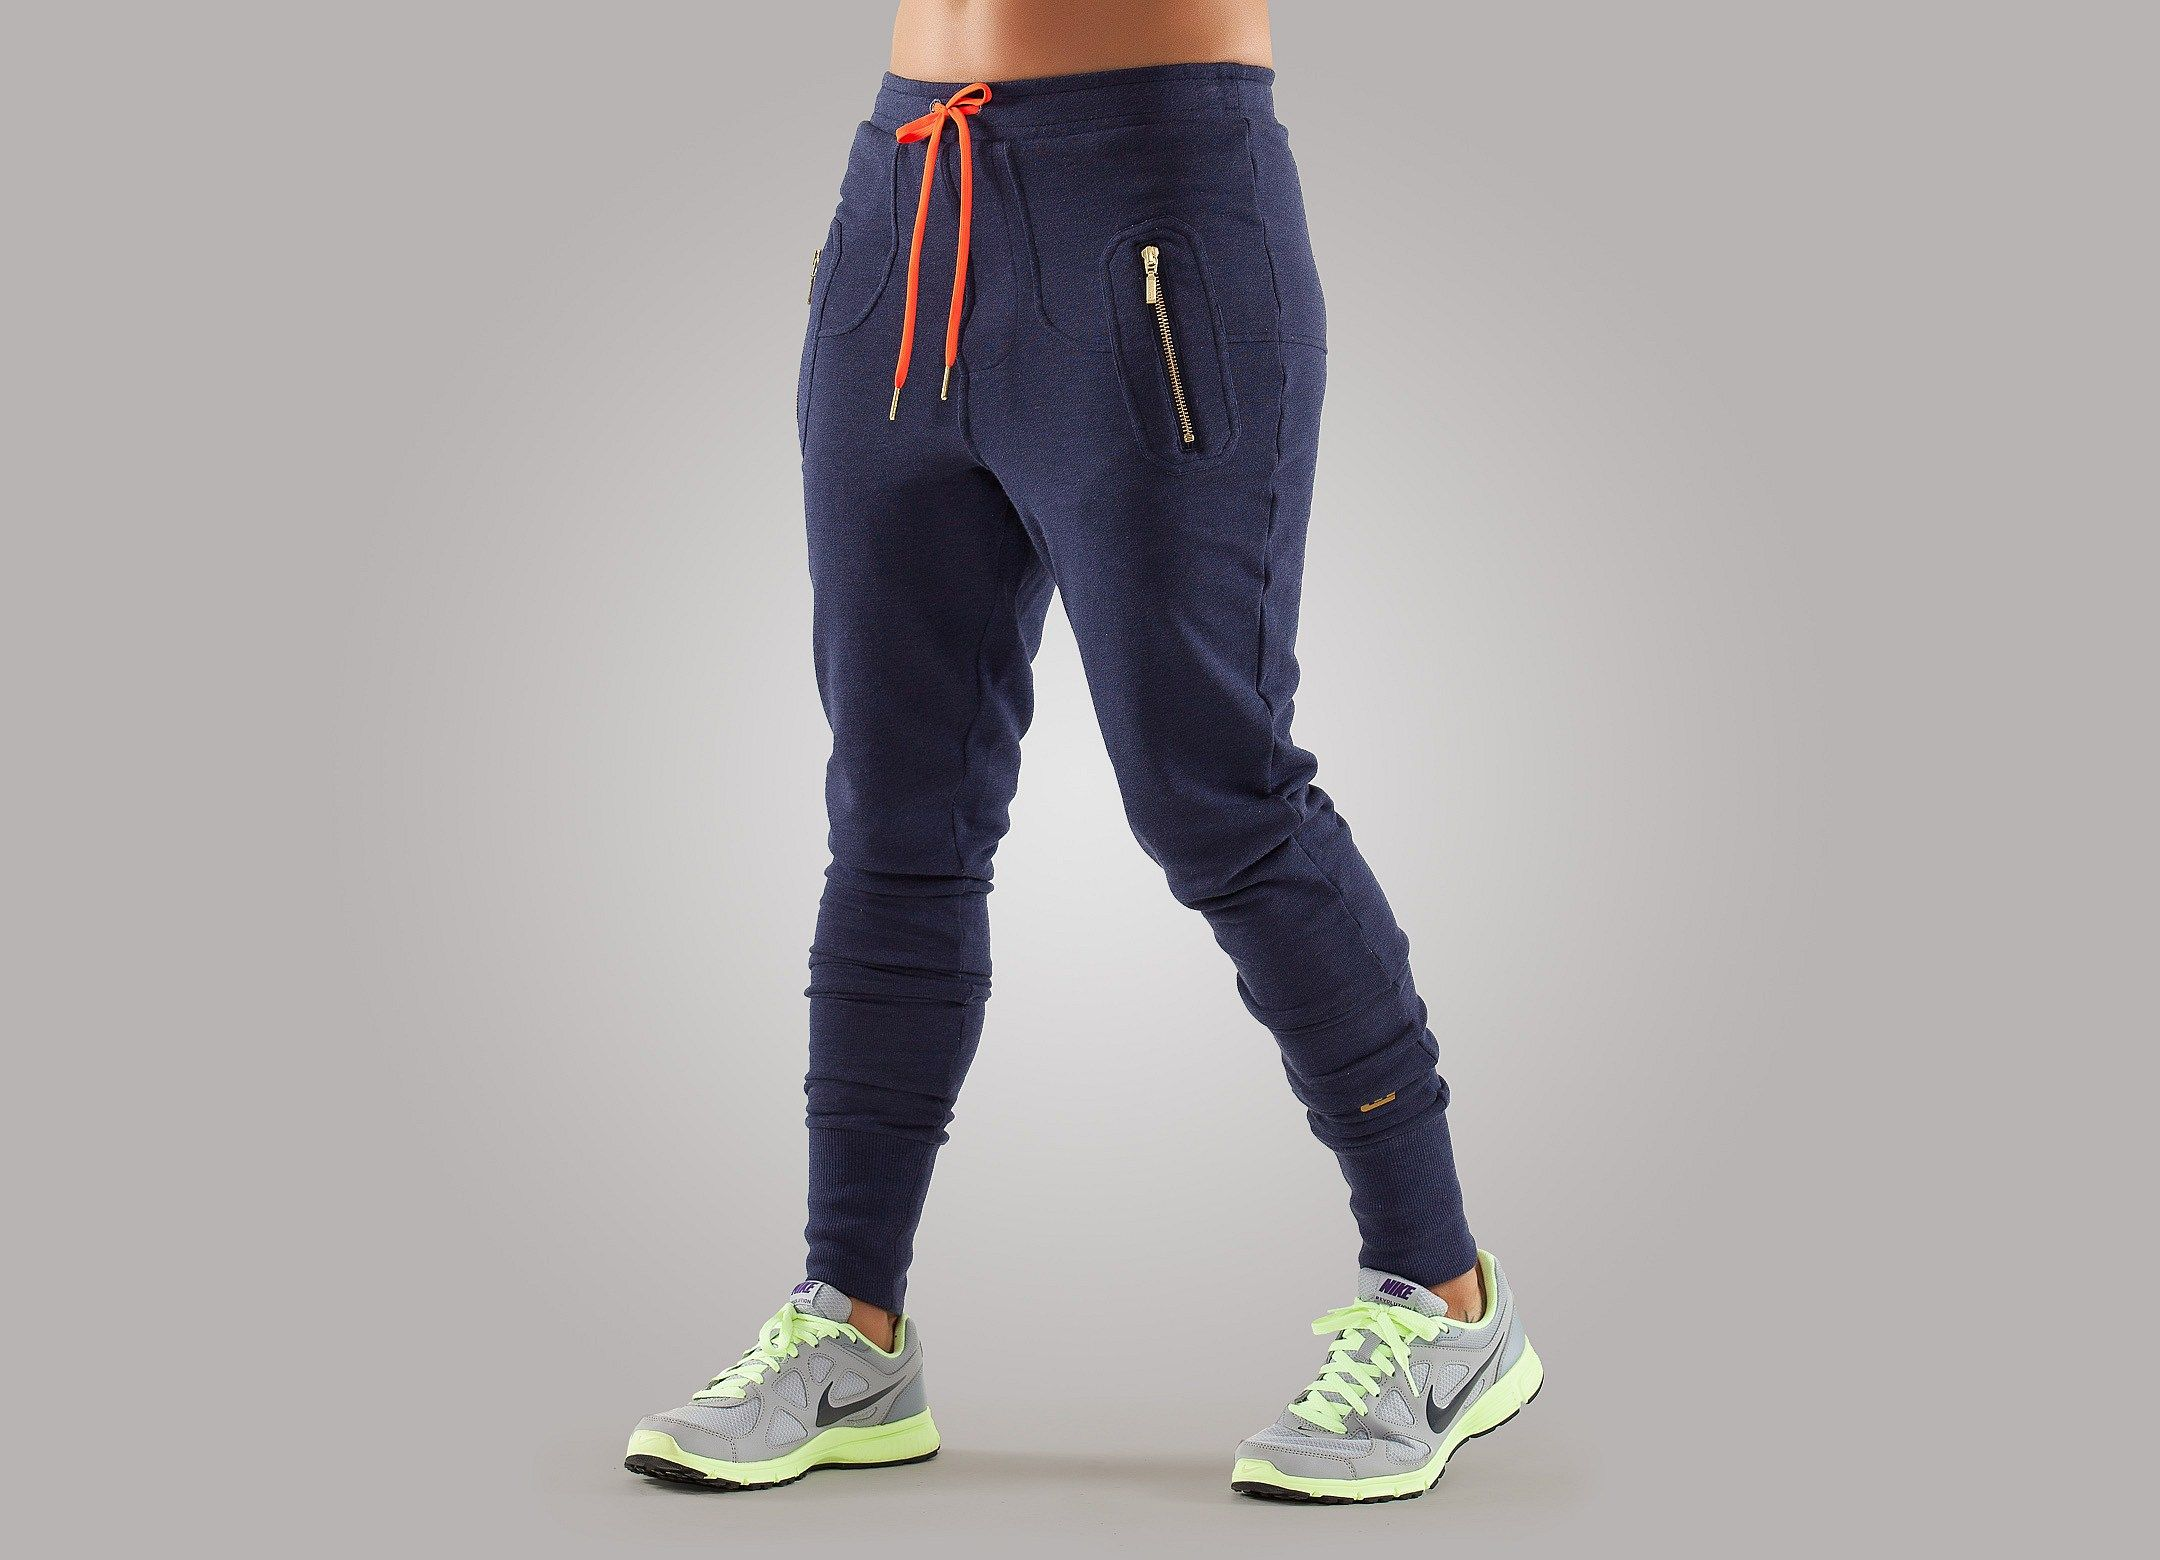 BODYJAM™ Clothing - Unisex Groove Pants - Les Mills